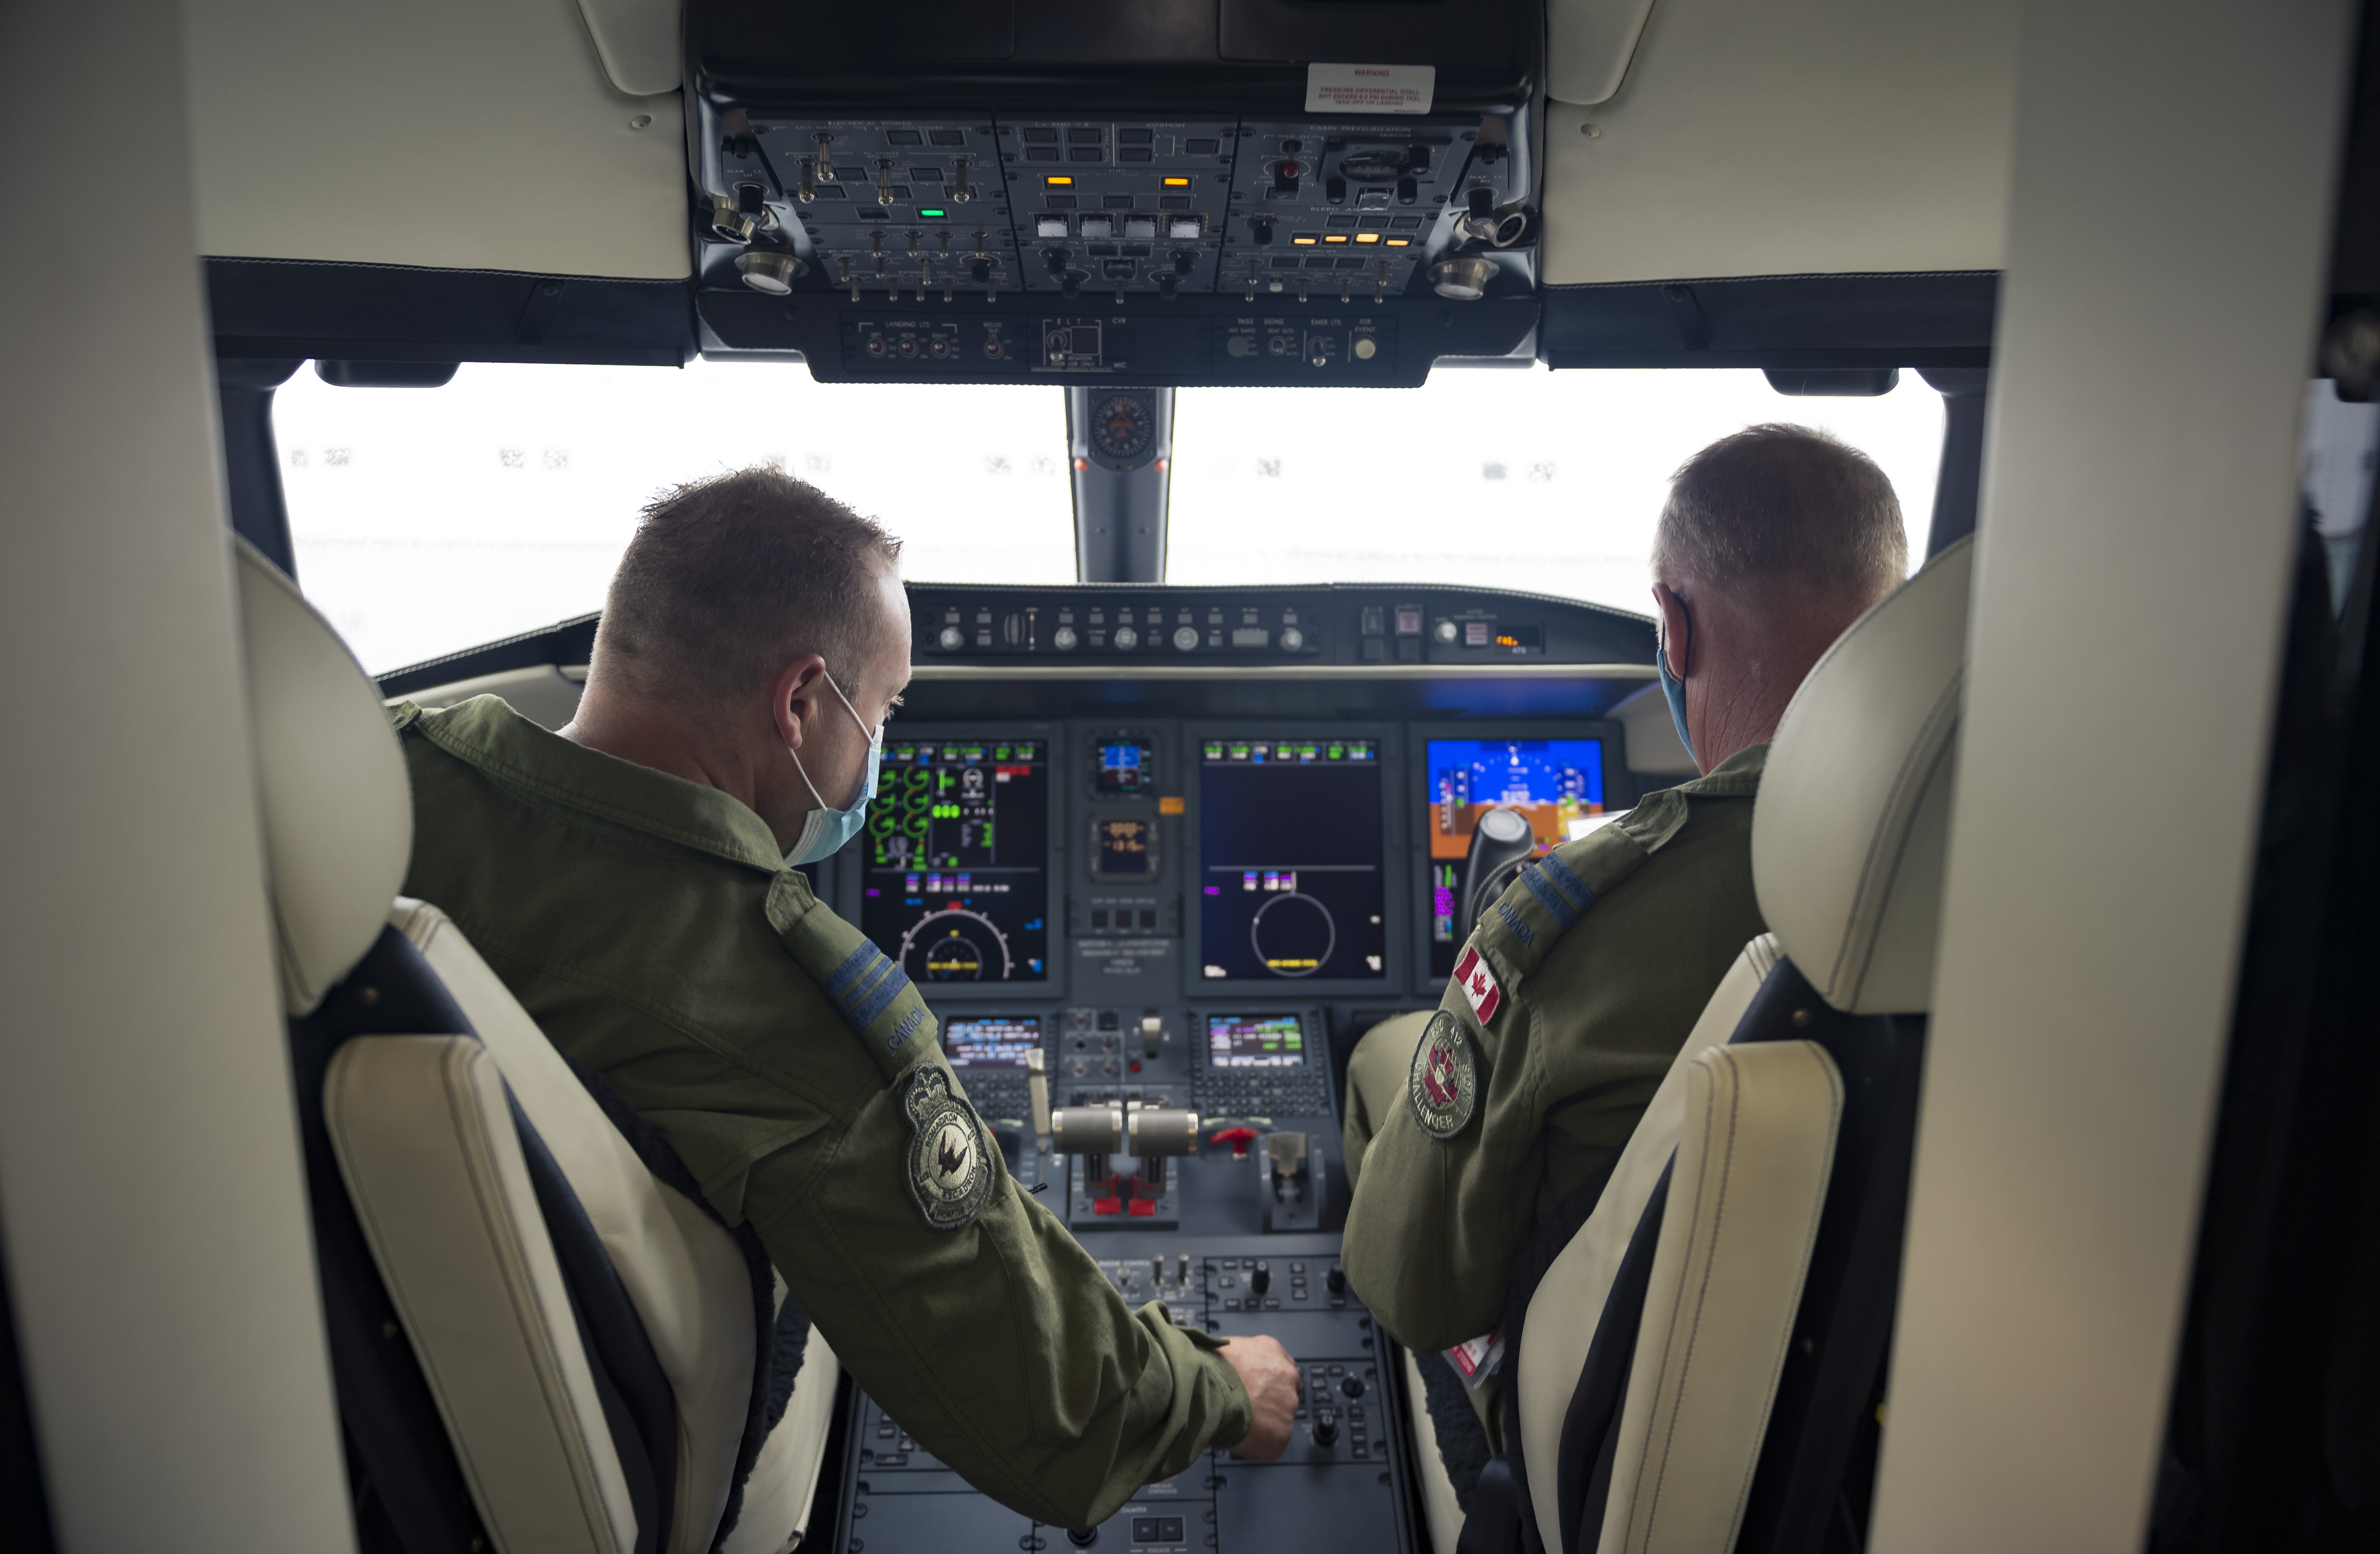 Maj V.S. Roy (Left) and Capt A.P.P. Couillard (Right), pilots at 412 Squadron, performing pre-flight checks in the new CC-144 Challenger aircraft in Ottawa, Ontario on 27 August 2020. PHOTO: Corporal Desiree T. Bourdon